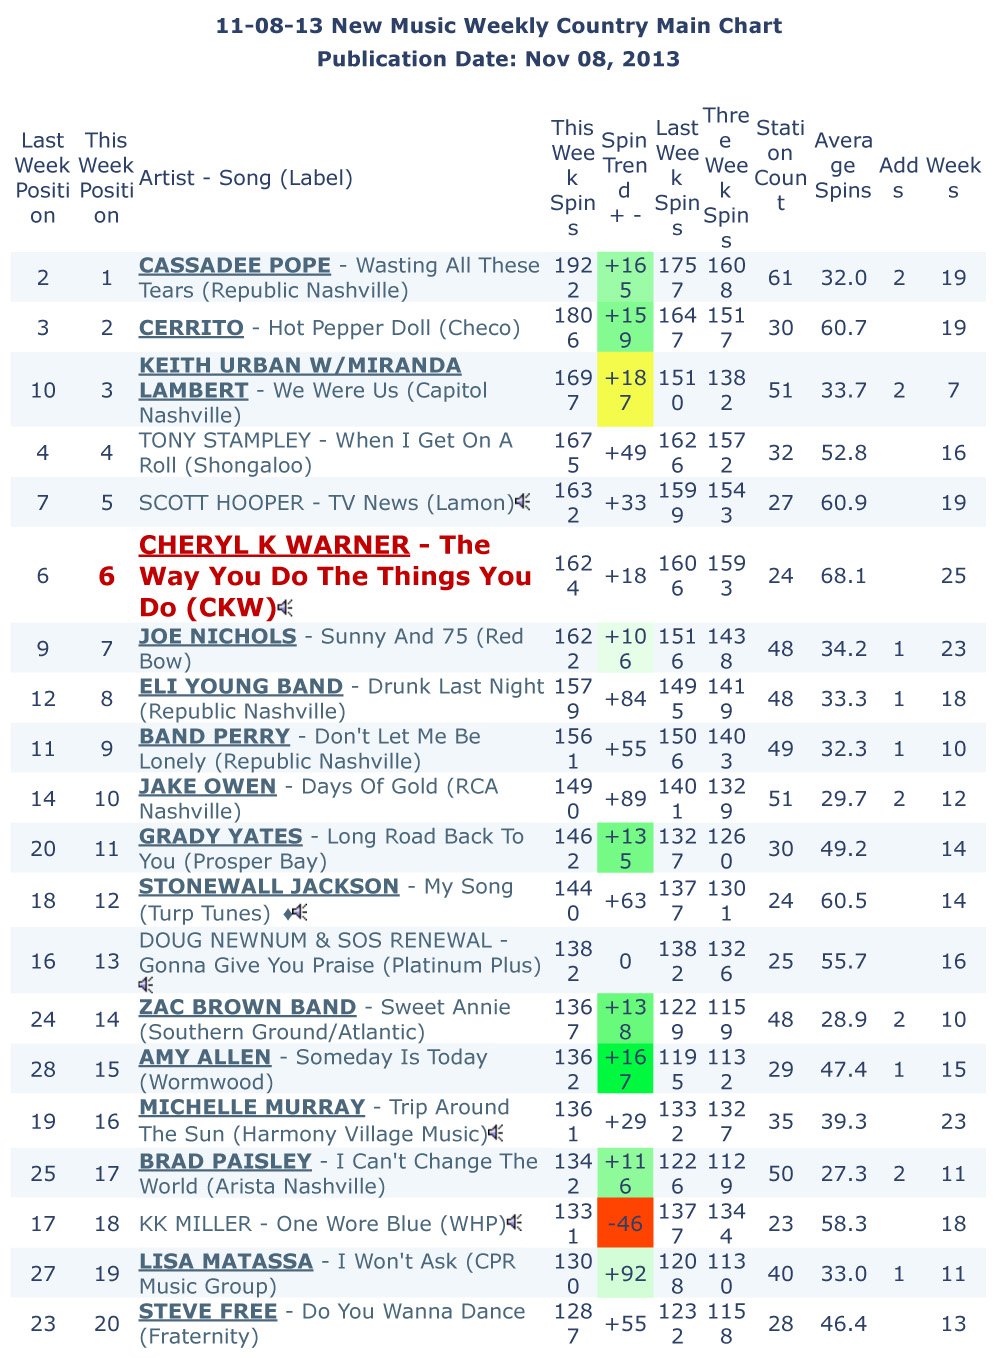 11-08-2013 New Music Weekly Country Main Chart